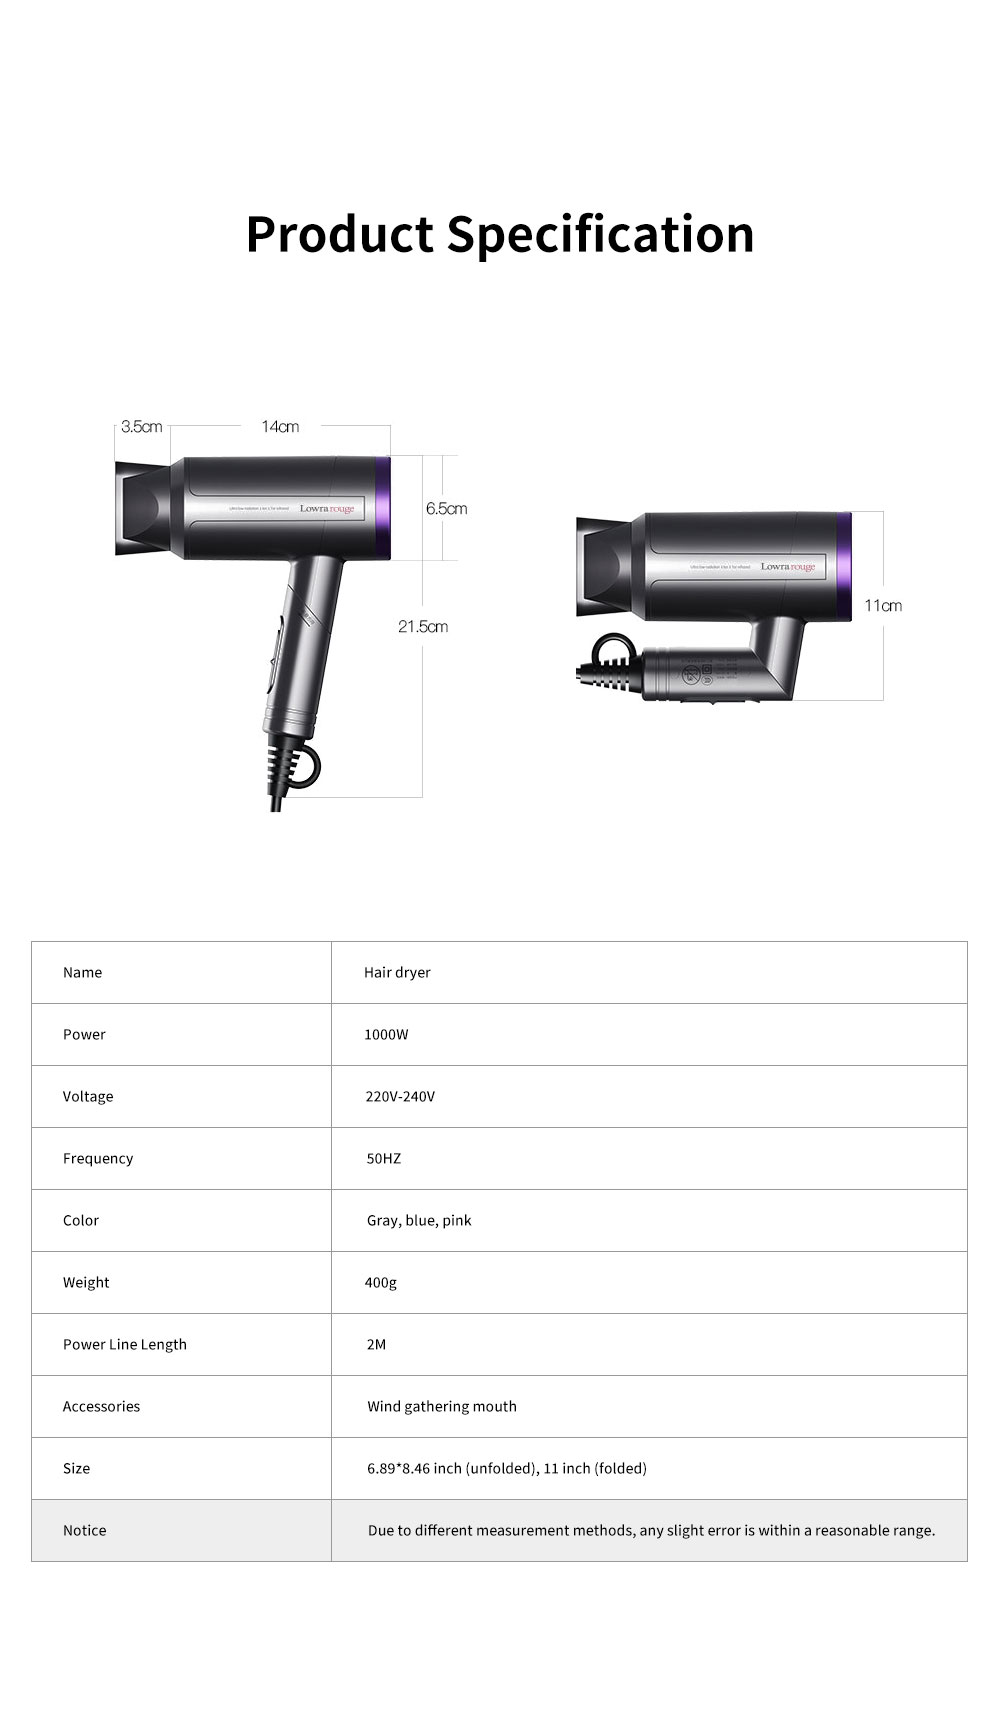 Minimalist Foldable Household Electric Har Dryer Low-Radiation Negative Ion Protection Bioceramic Far Infrared Heating Hair Dryer 7